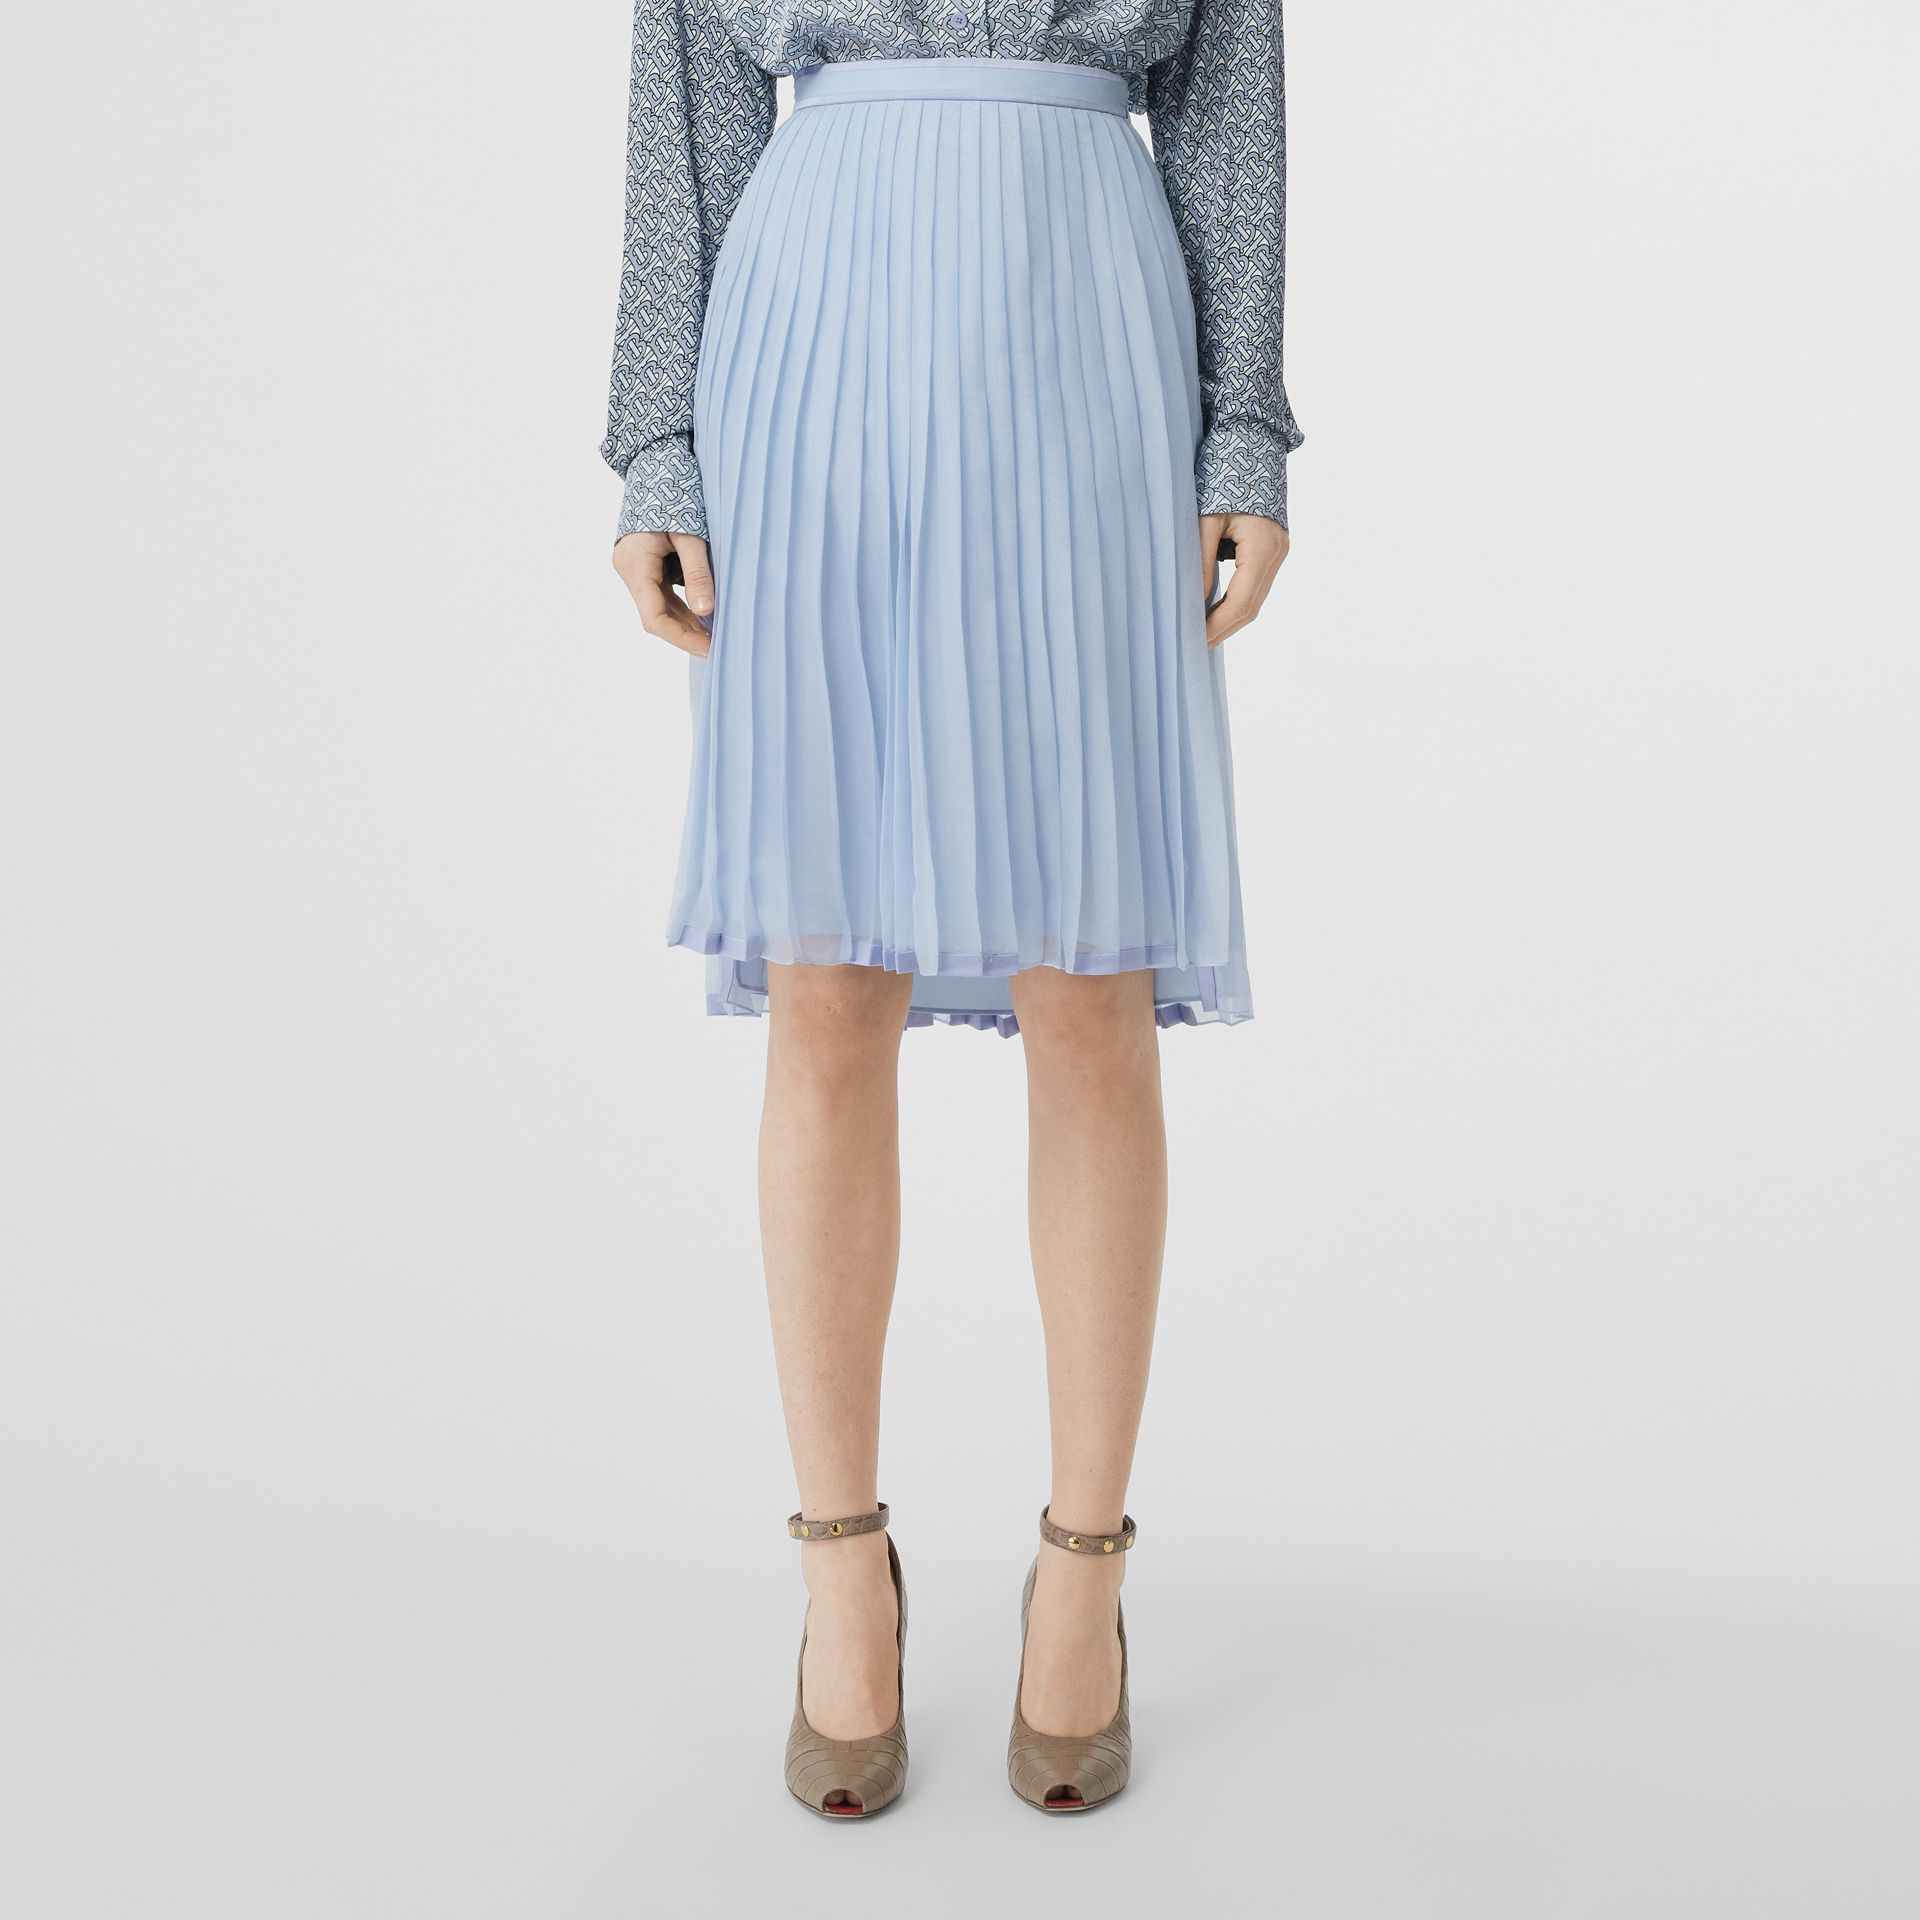 Contrast Trim Pleated Skirt in Pale Blue - Women | Burberry Hong Kong - gallery image 4